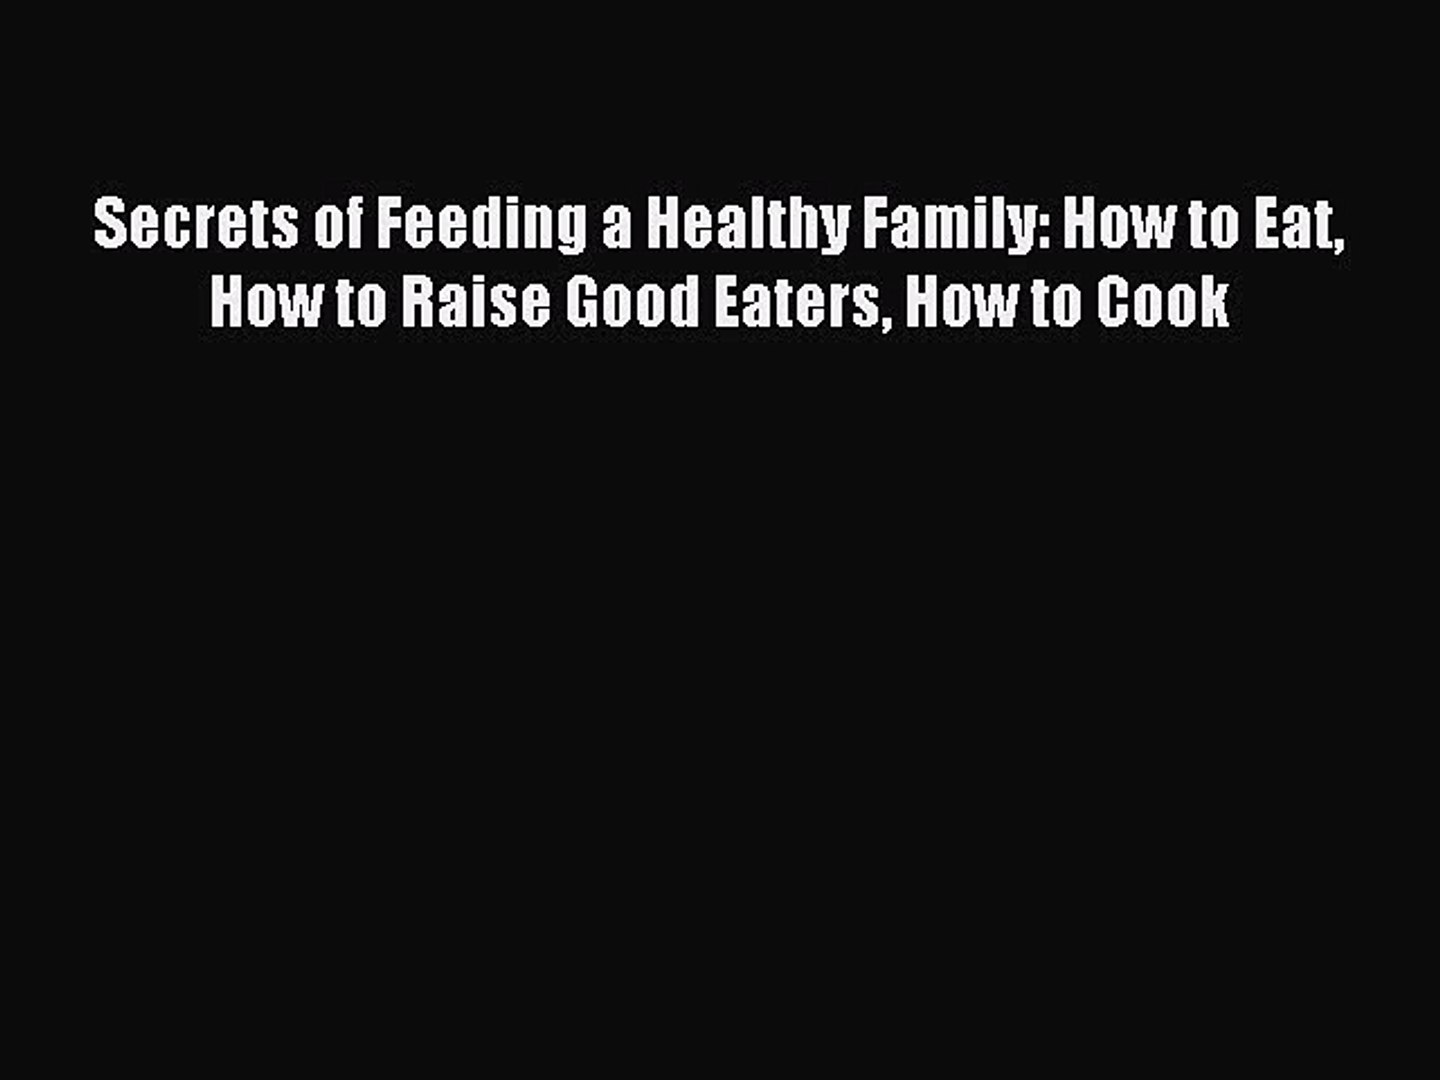 Download Secrets of Feeding a Healthy Family: How to Eat How to Raise Good Eaters How to Cook